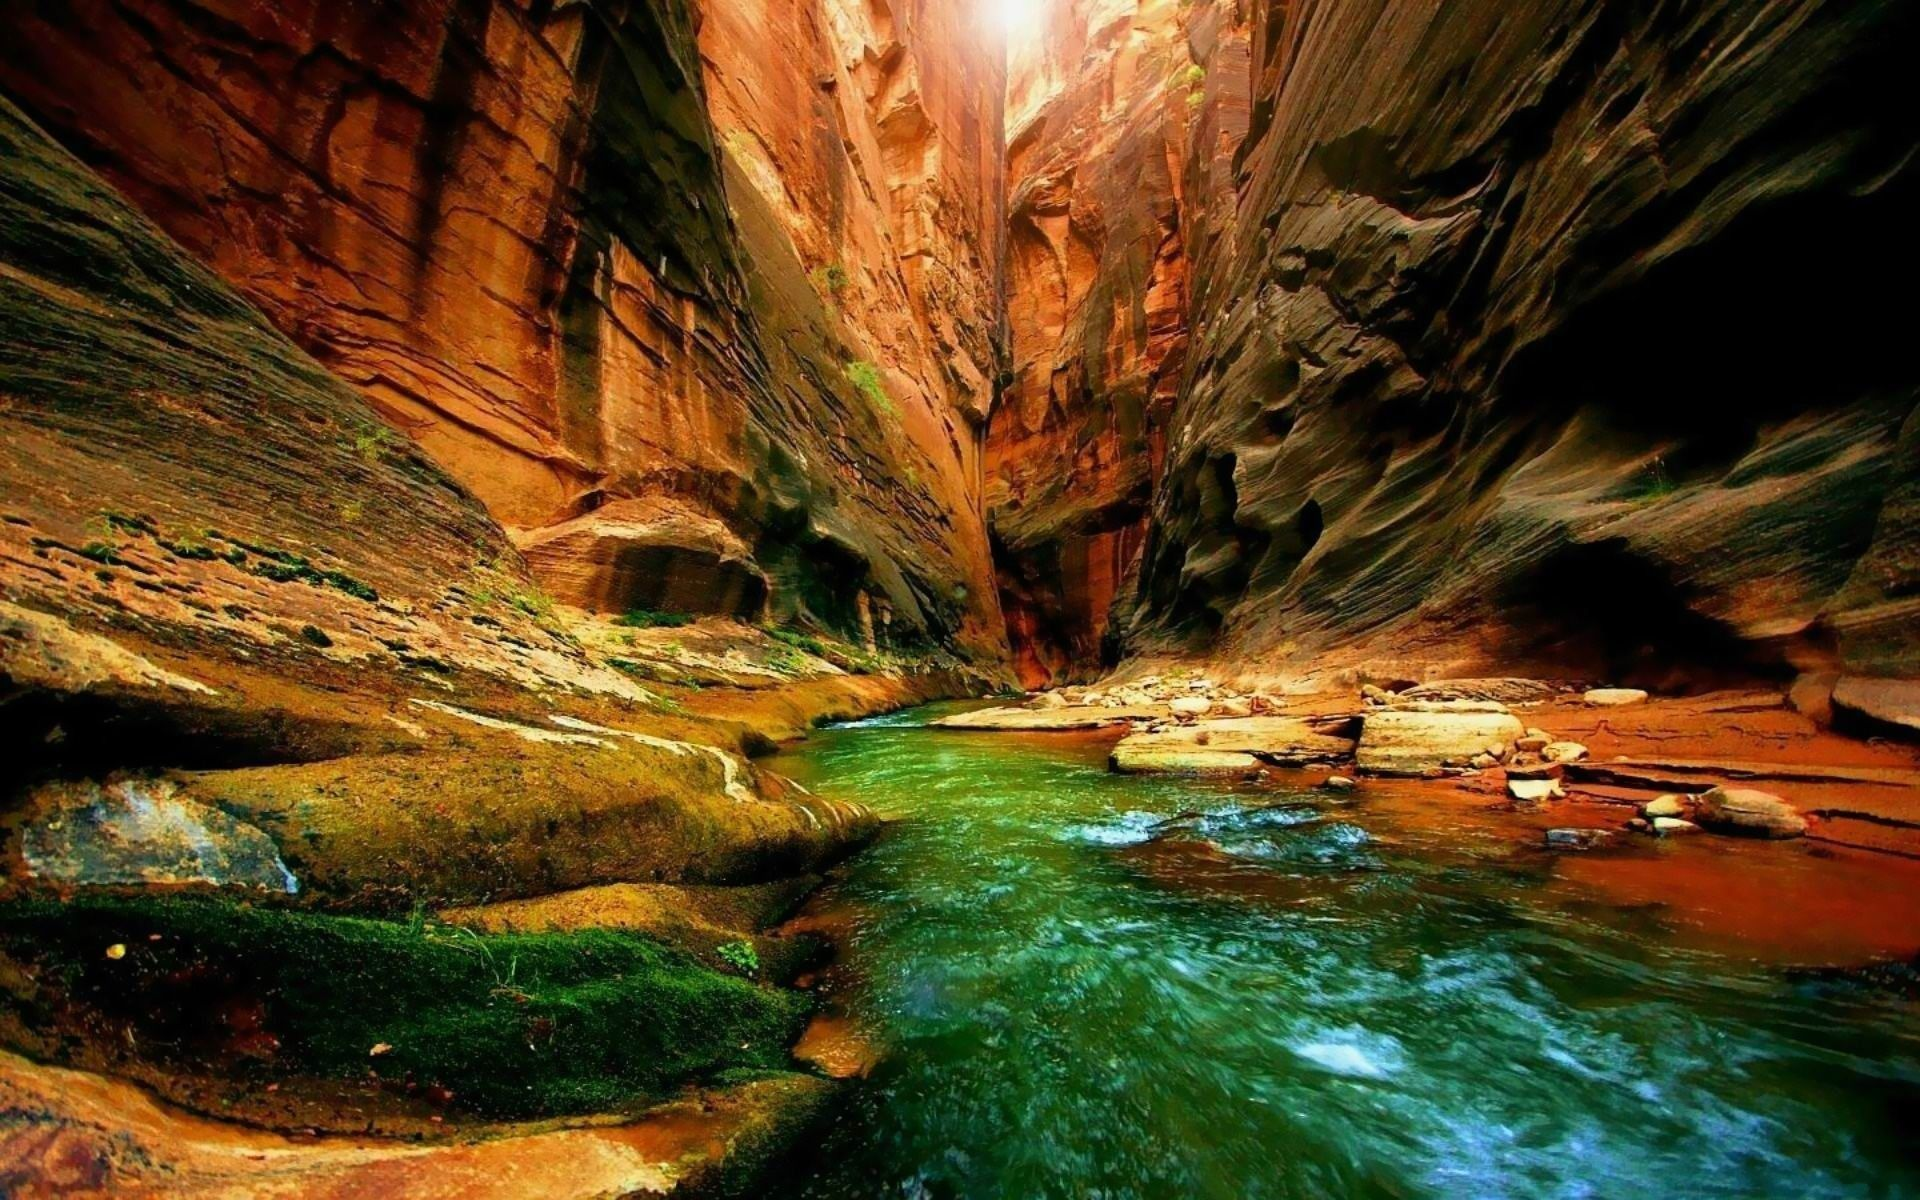 Amazing Wallpaper Mobile Scenery - Scenery-Picture-Wallpapers-028  Image_187870.jpg